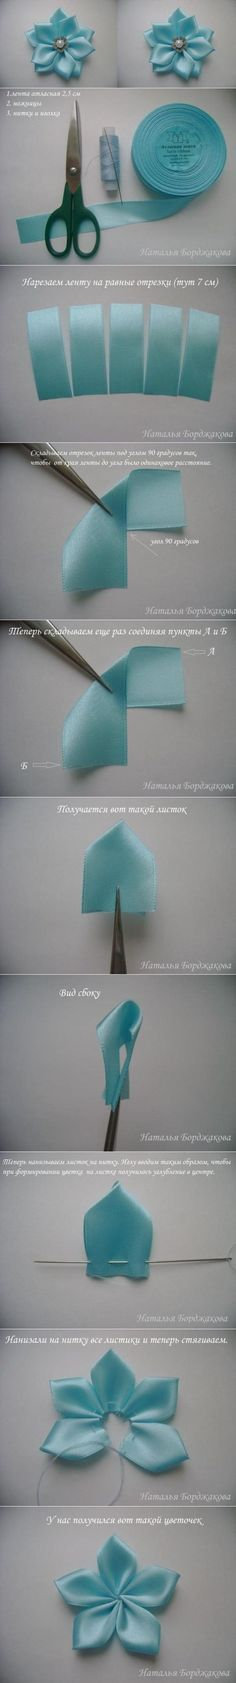 Luty Crochet Arts: handmade flowers DIY Pointed Petals Ribbon Flower DIY Pointed Petals Ribbon Flower Okay, so I can't read Russian, but this is cool.DIY Pointed Petals Ribbon Flower DIY Pointed Petals Ribbon Flower, I know it's in Russian and for th Ribbon Art, Diy Ribbon, Fabric Ribbon, Ribbon Crafts, Flower Crafts, Fabric Crafts, Sewing Crafts, Diy Crafts, Ribbon Flower